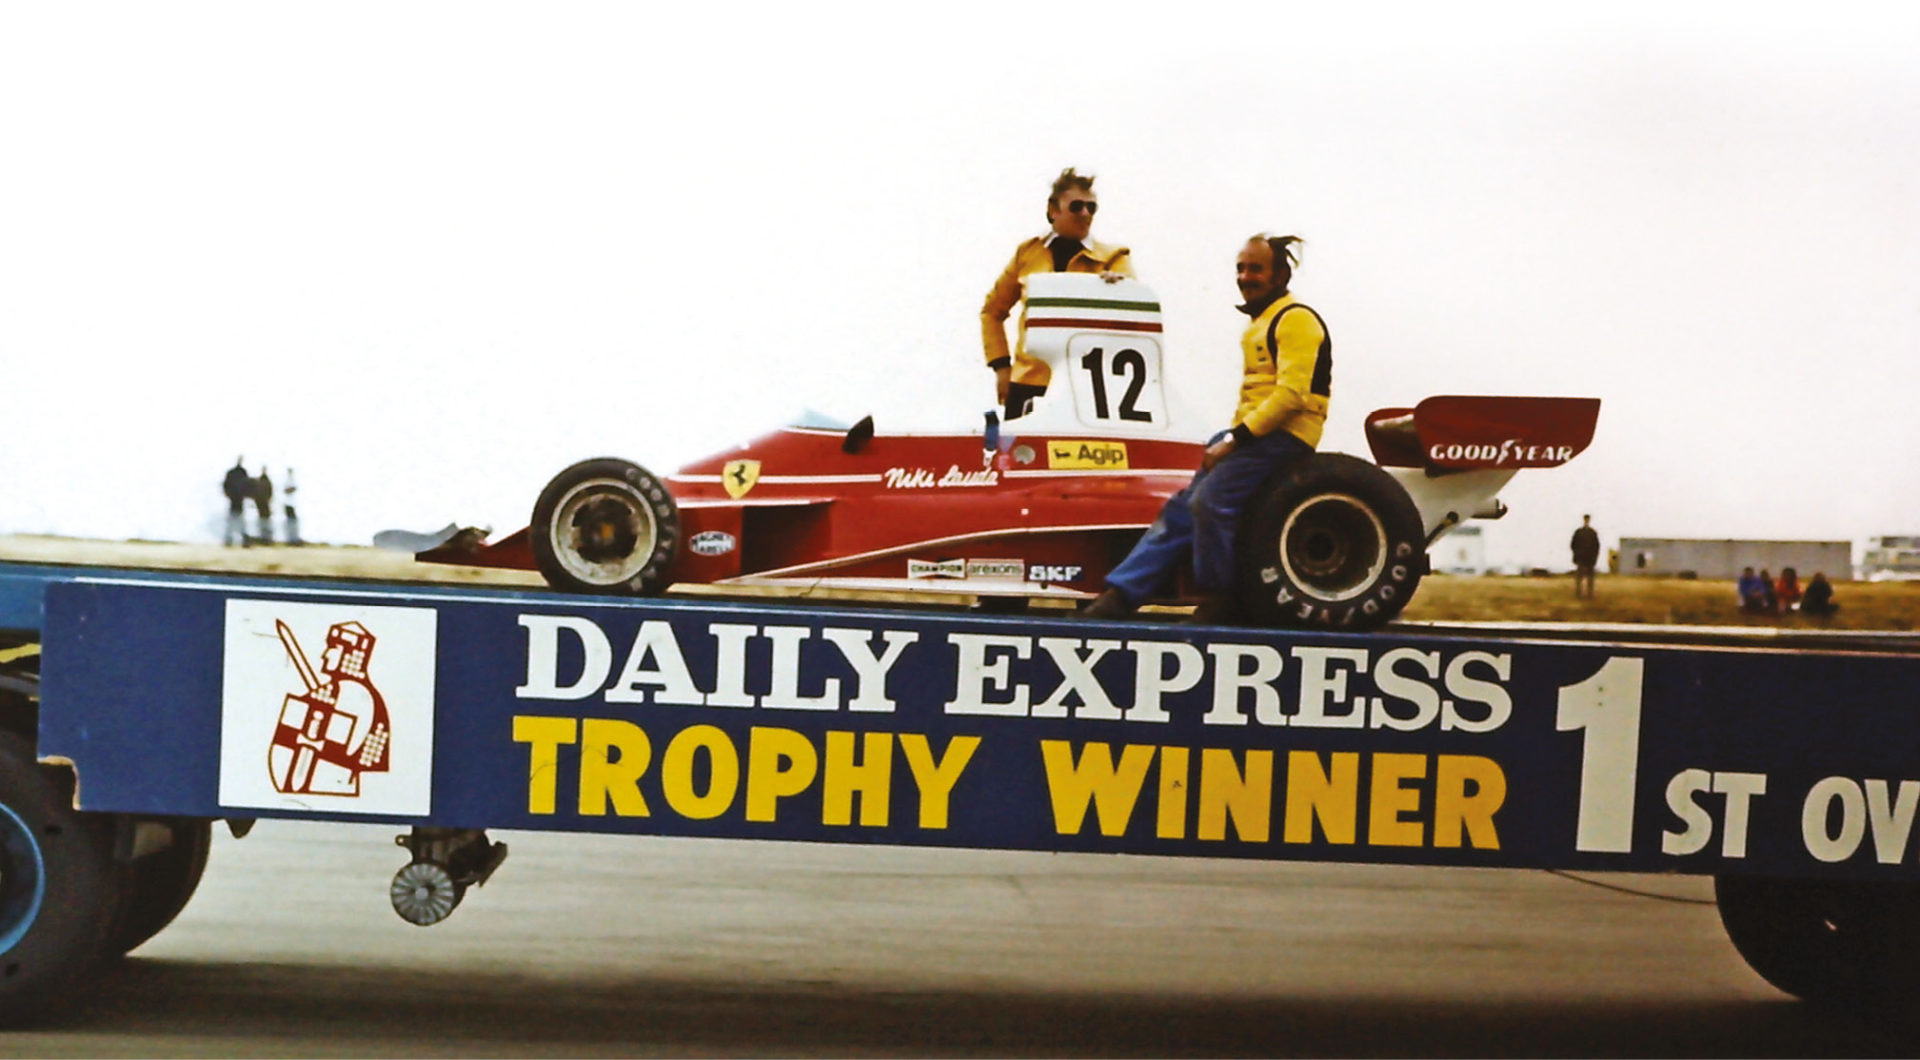 With this non-championship race being held on April 13, it marked Lauda's first win of the season. He would take his first championship pole in Spain a fortnight later, then first win at Monaco in May, putting him on his way to his first world title